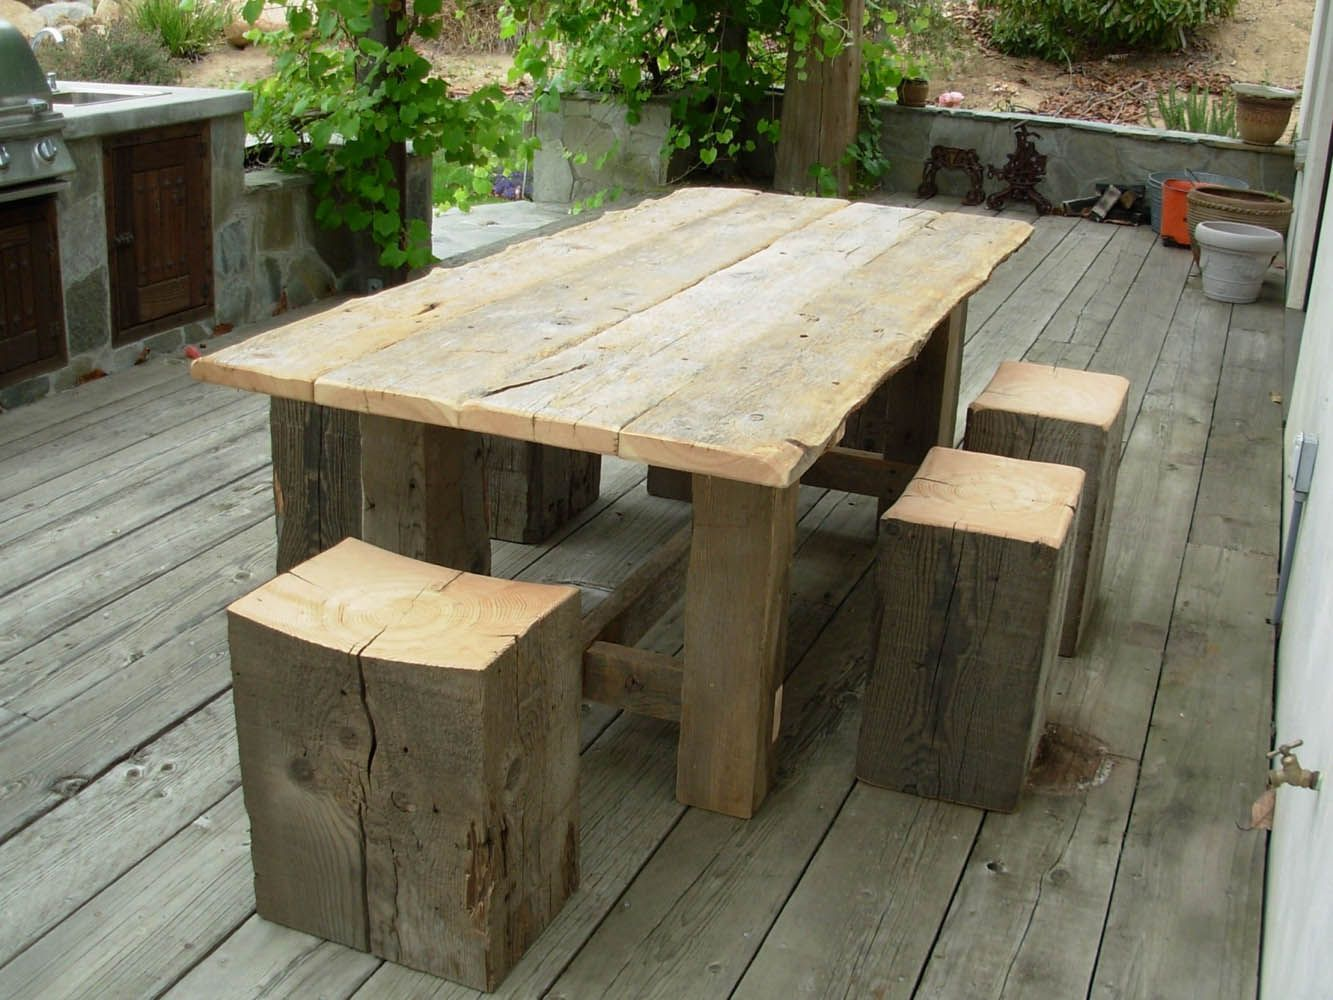 This outdoor patio table was built for the Vintage Timberworks Temecula showroom using weathered Gray Board planking with worn rustic edges. & This outdoor patio table was built for the Vintage Timberworks ...